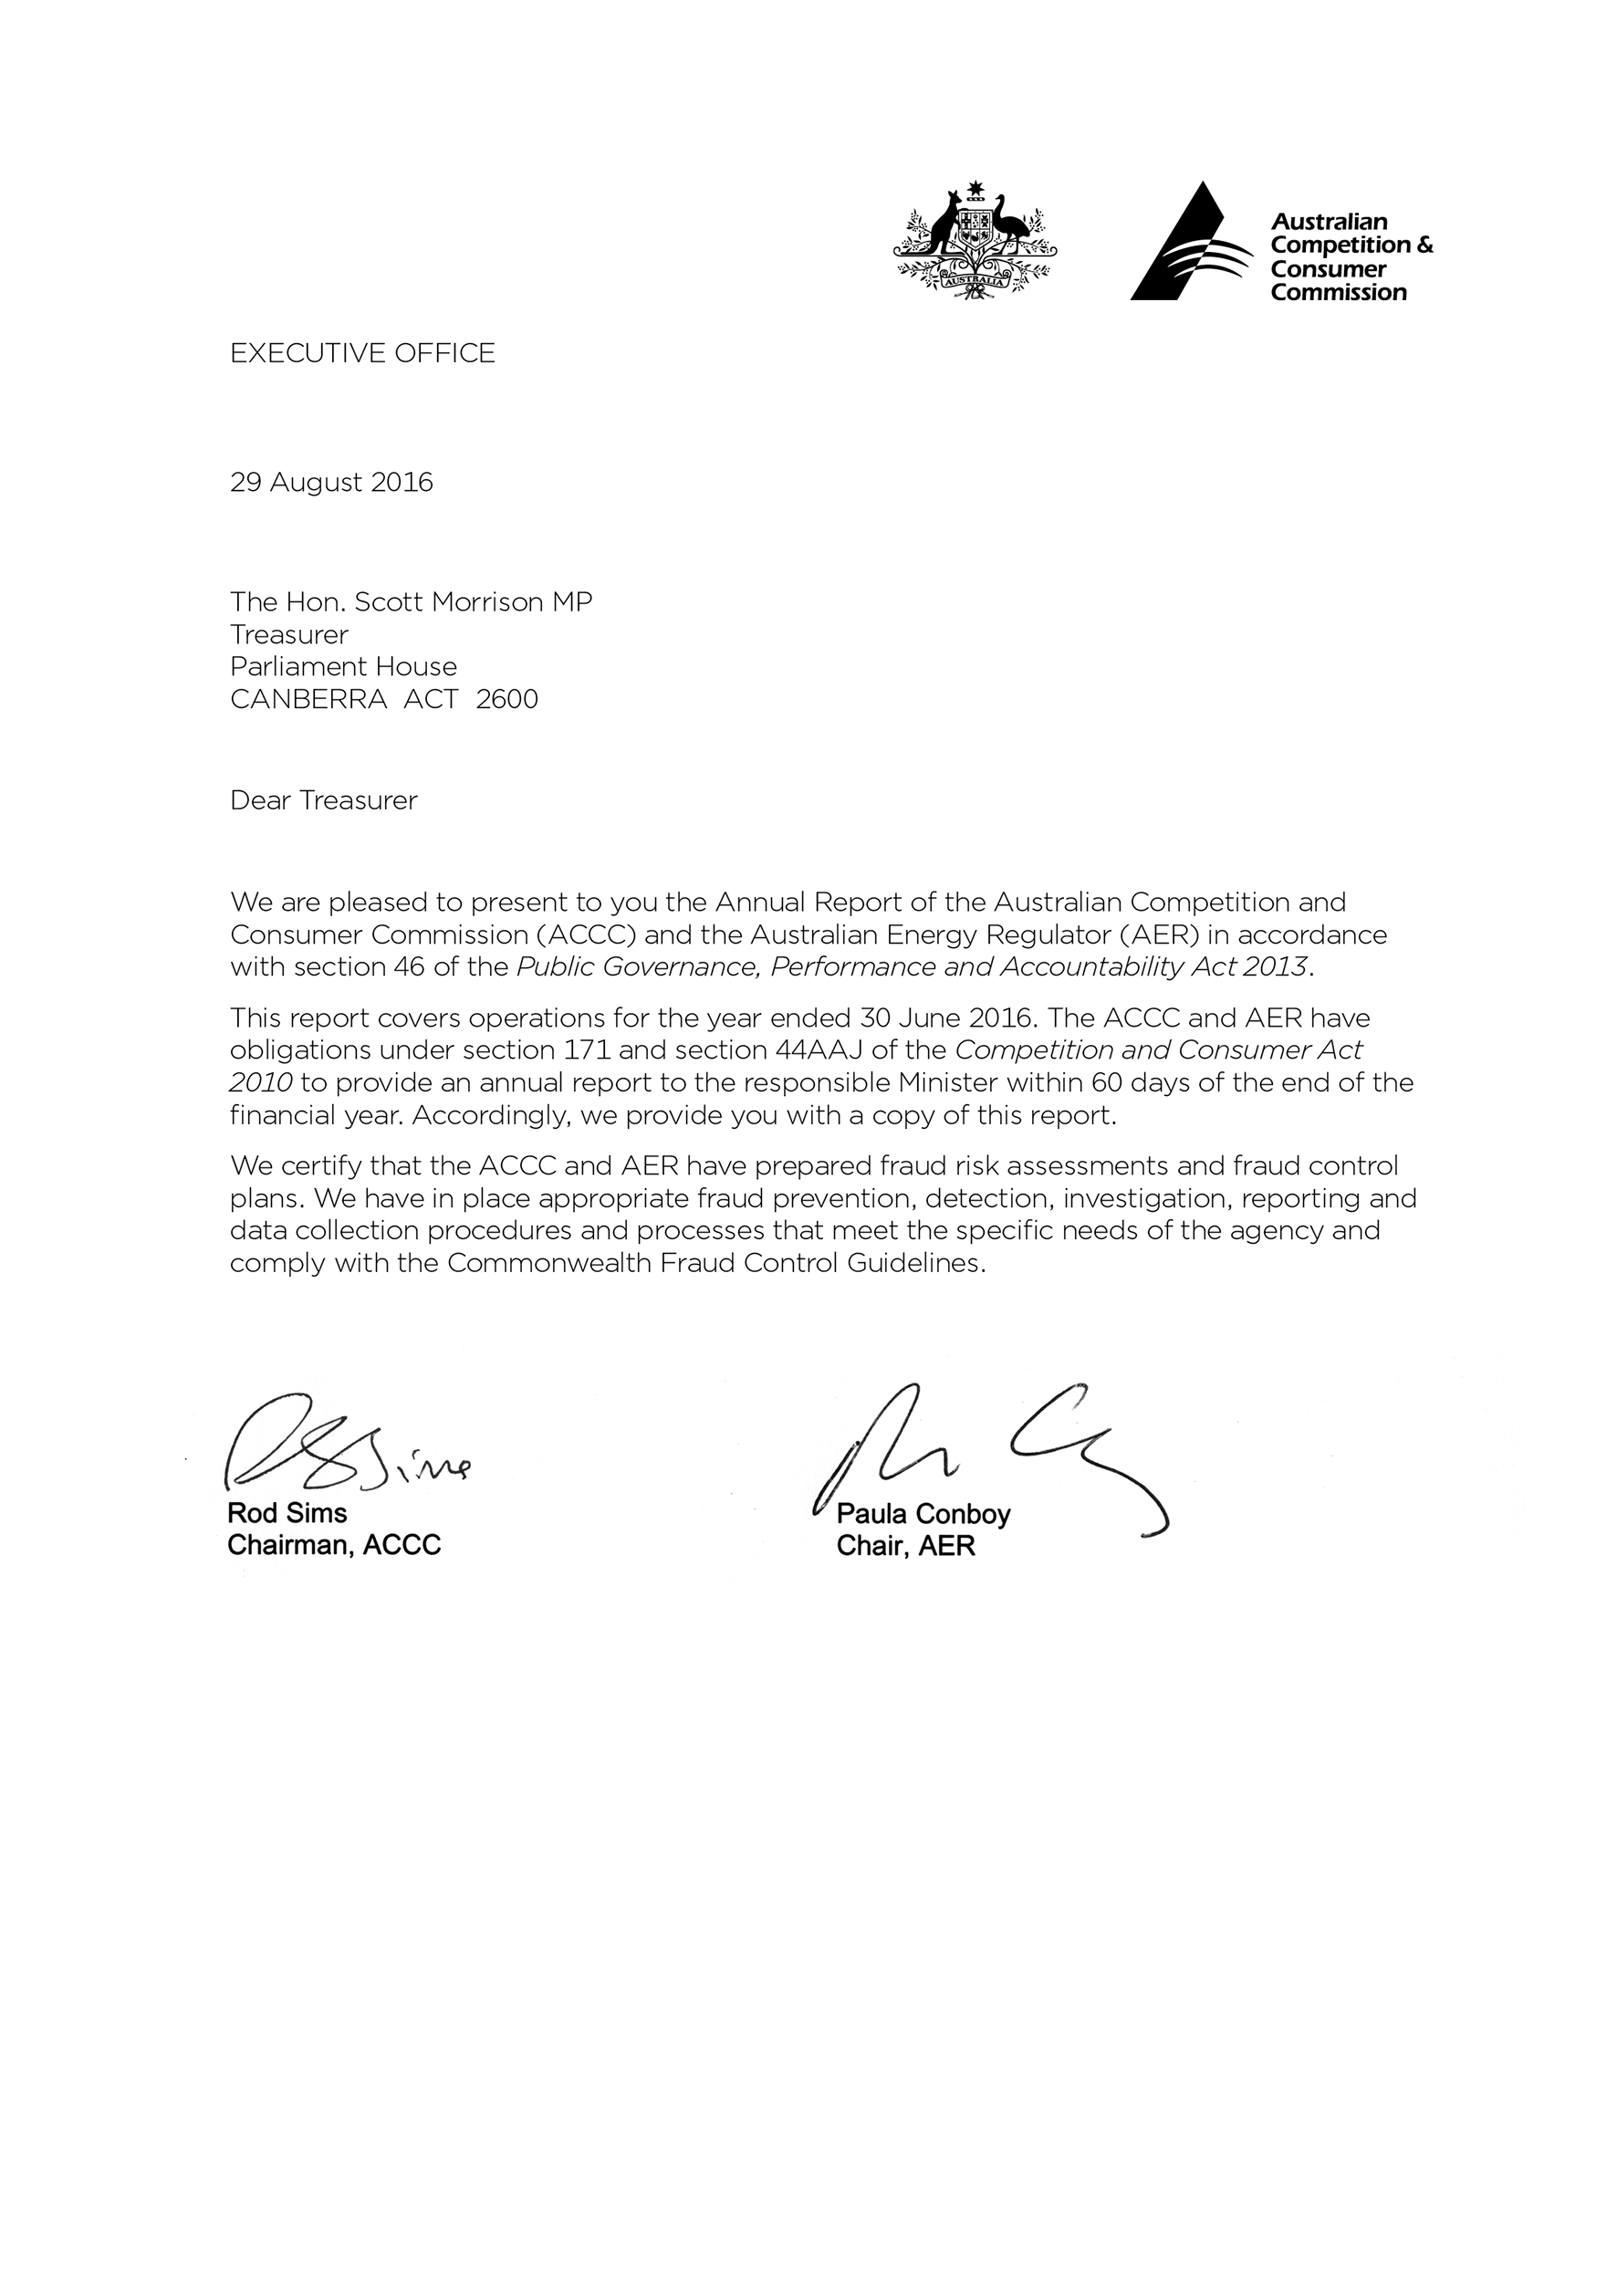 Accc Aer Annual Report 2015 16 Letter Of Transmittal Accc